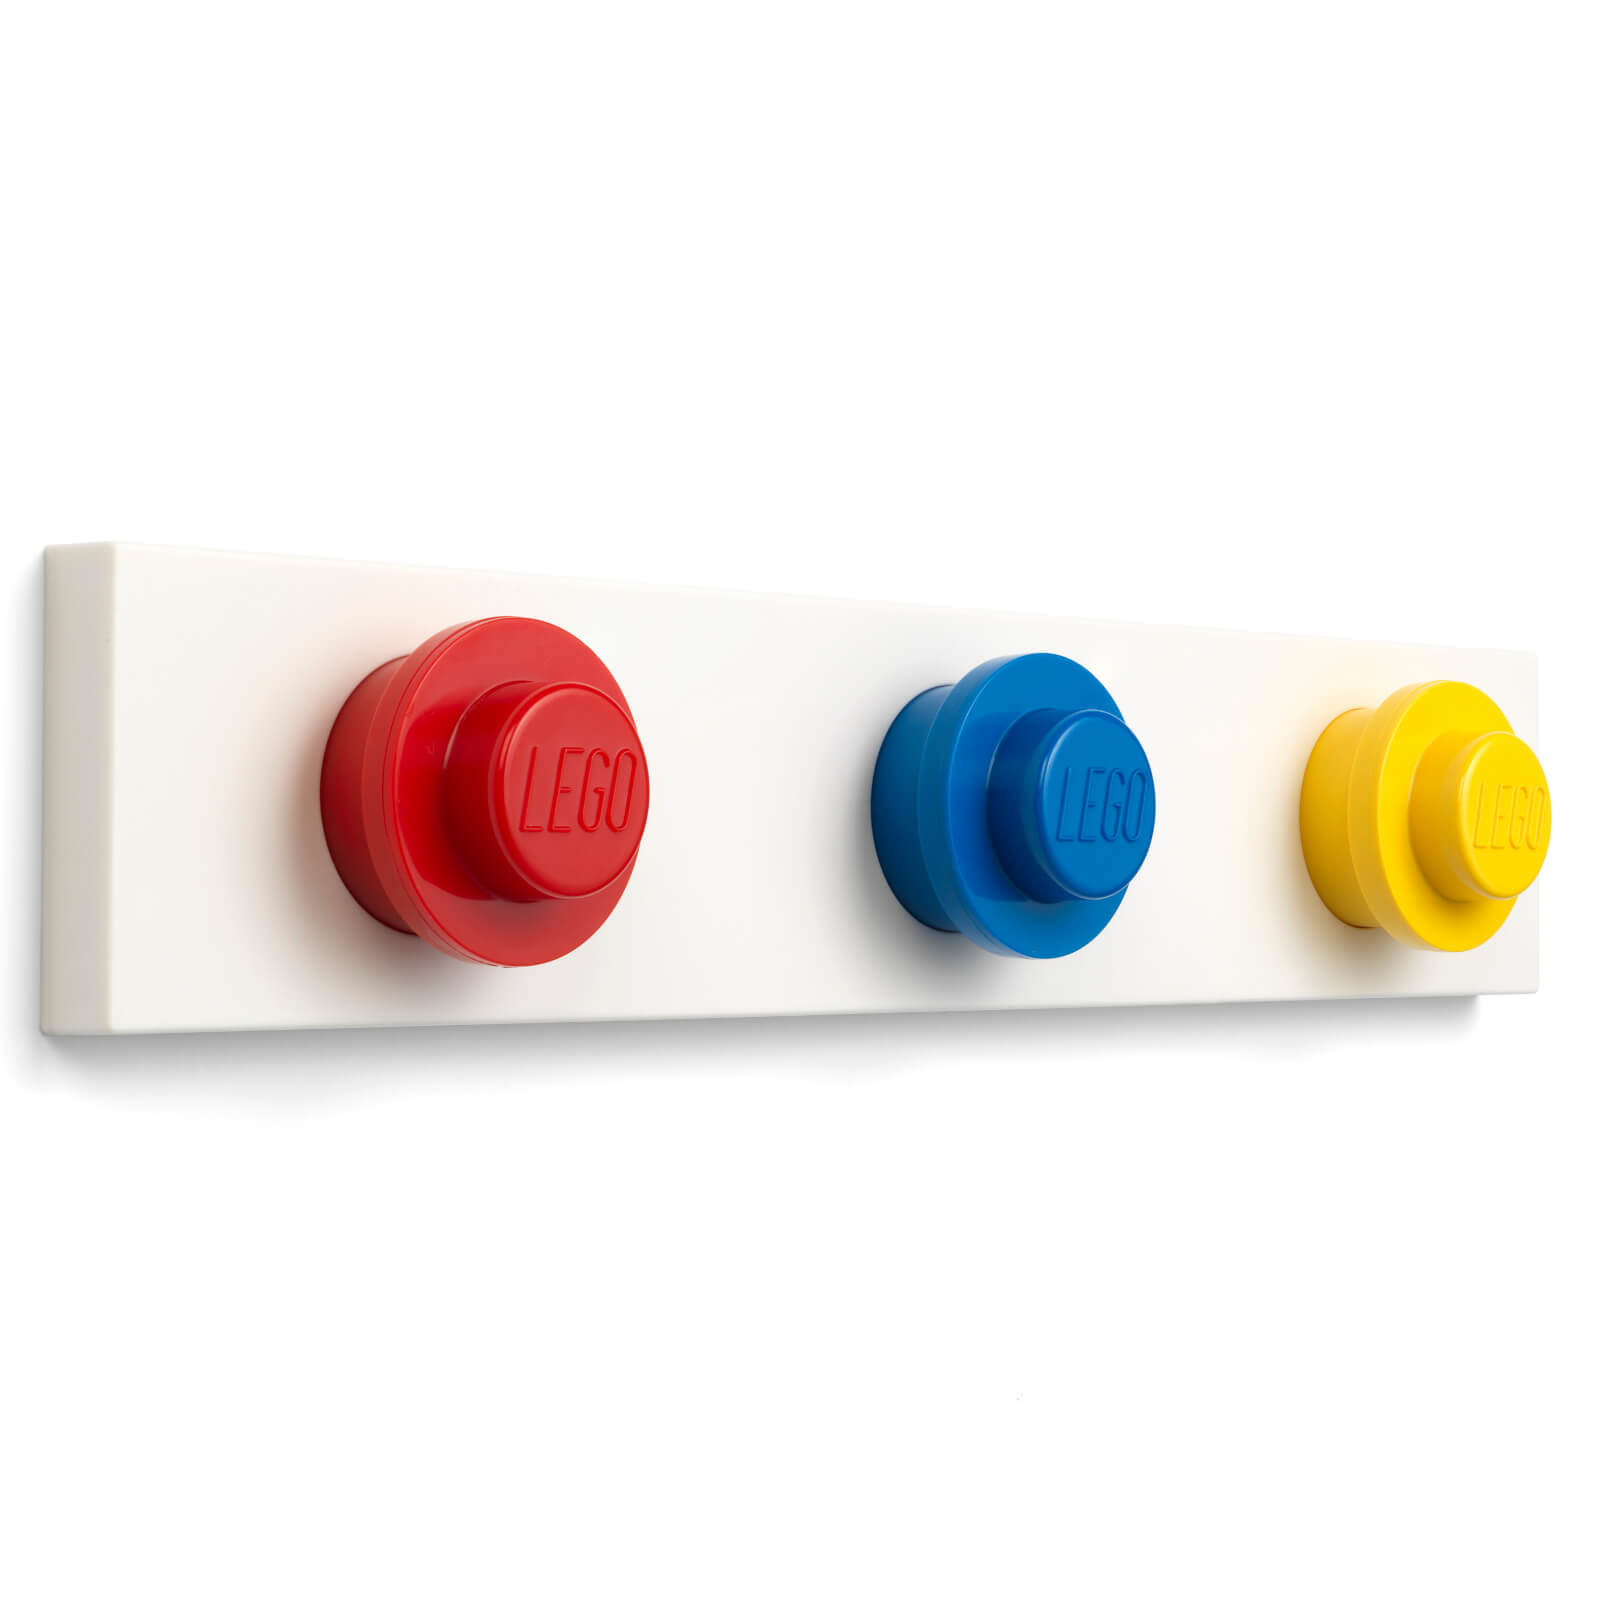 Image of LEGO Storage Wall Hanger Rack - Red